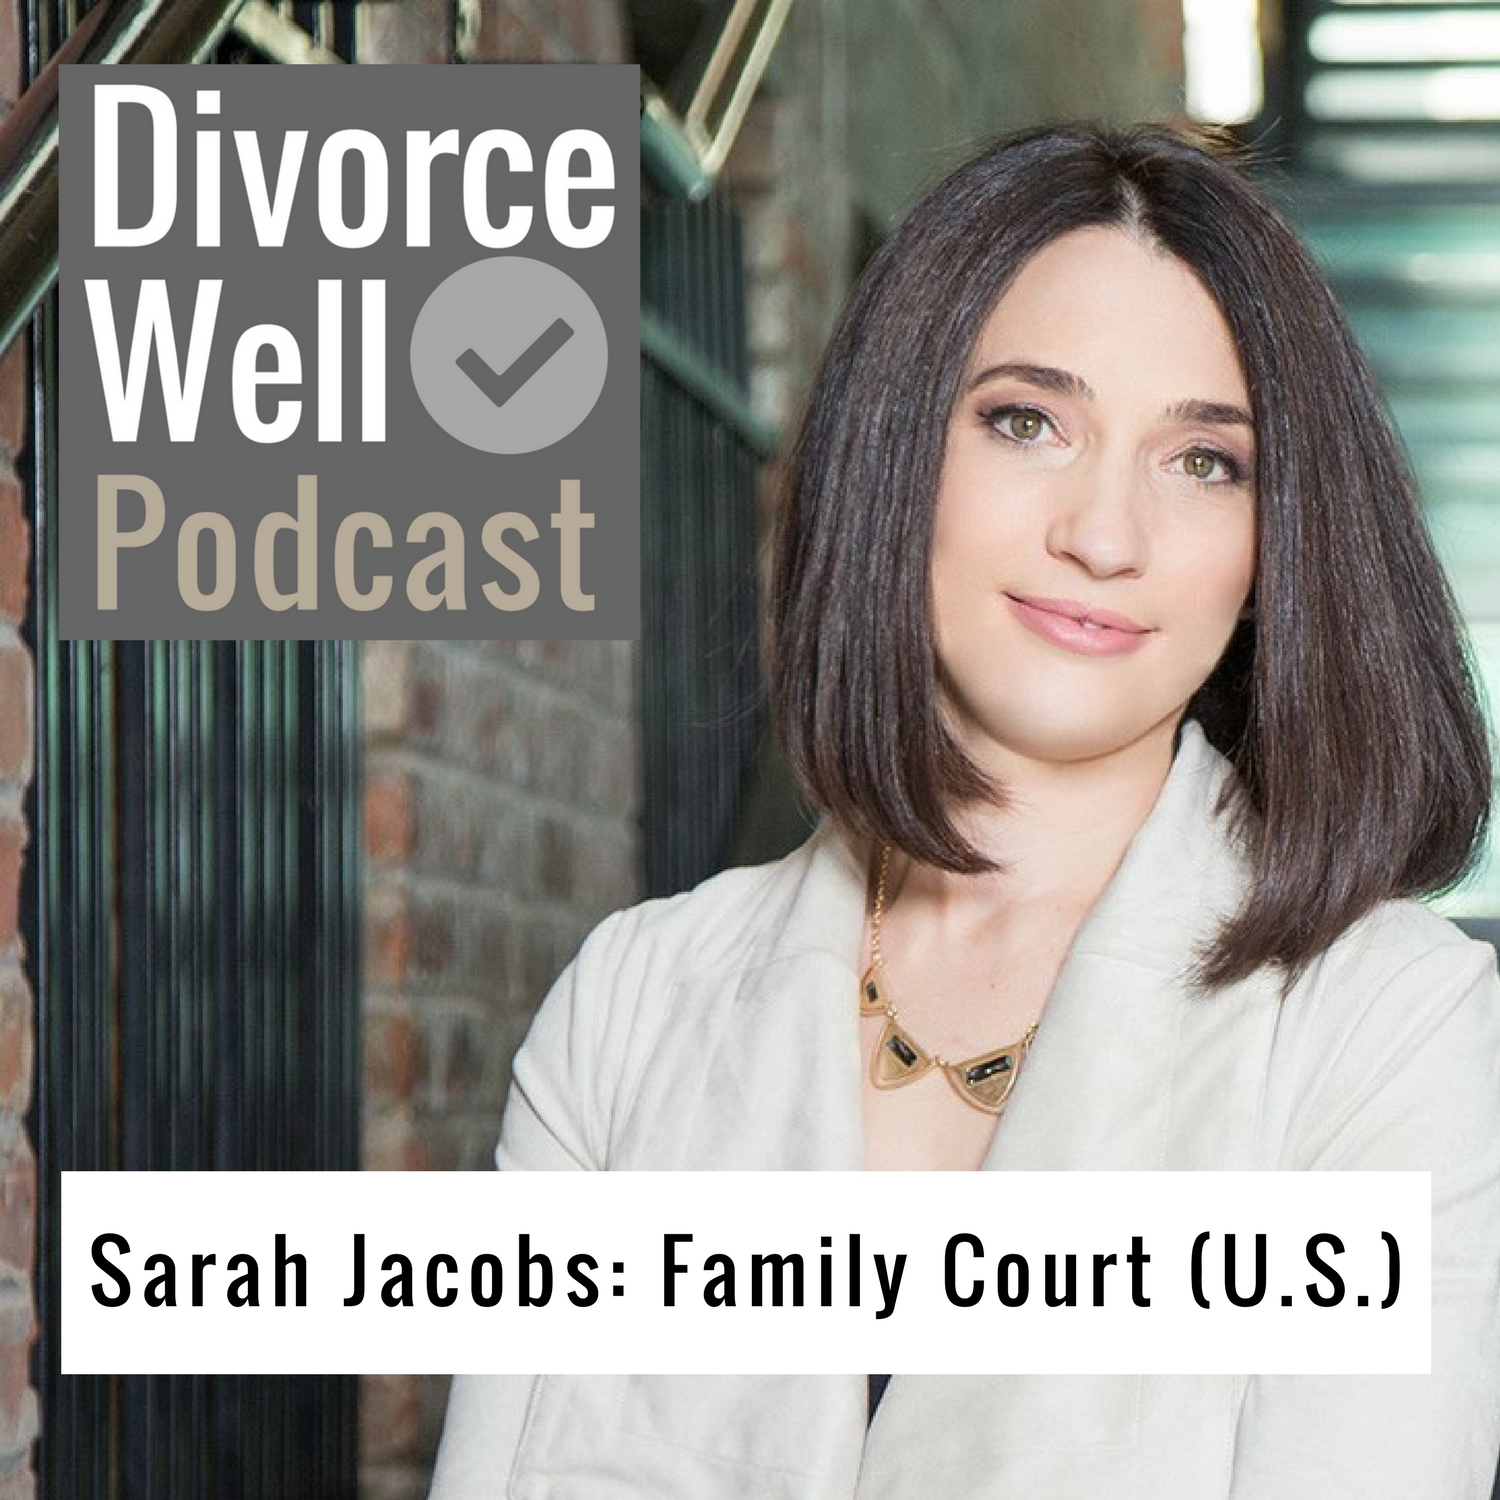 The Divorce Well Podcast - 21 - Family Court in the U.S., with Sarah Jacobs